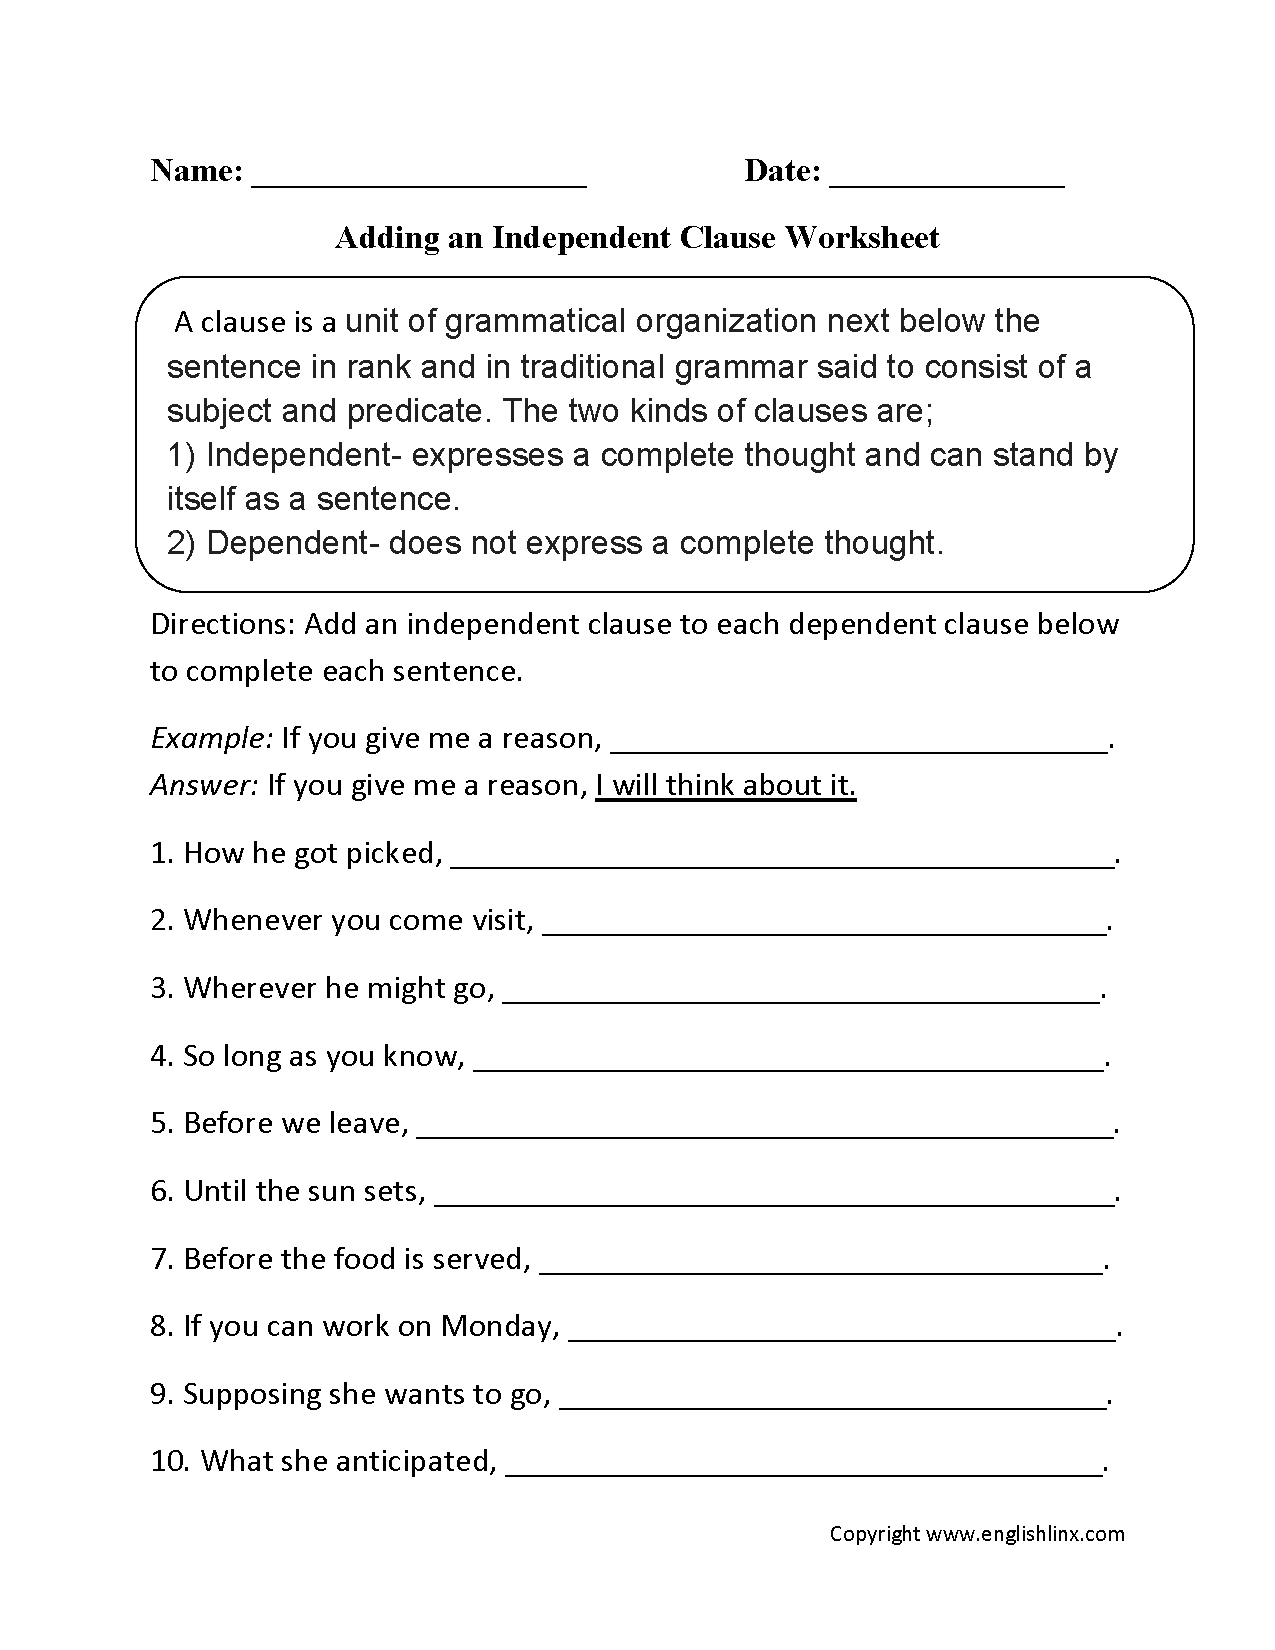 Worksheets Independent Clause Worksheet englishlinx com clauses worksheets adding an inependent clause worksheet